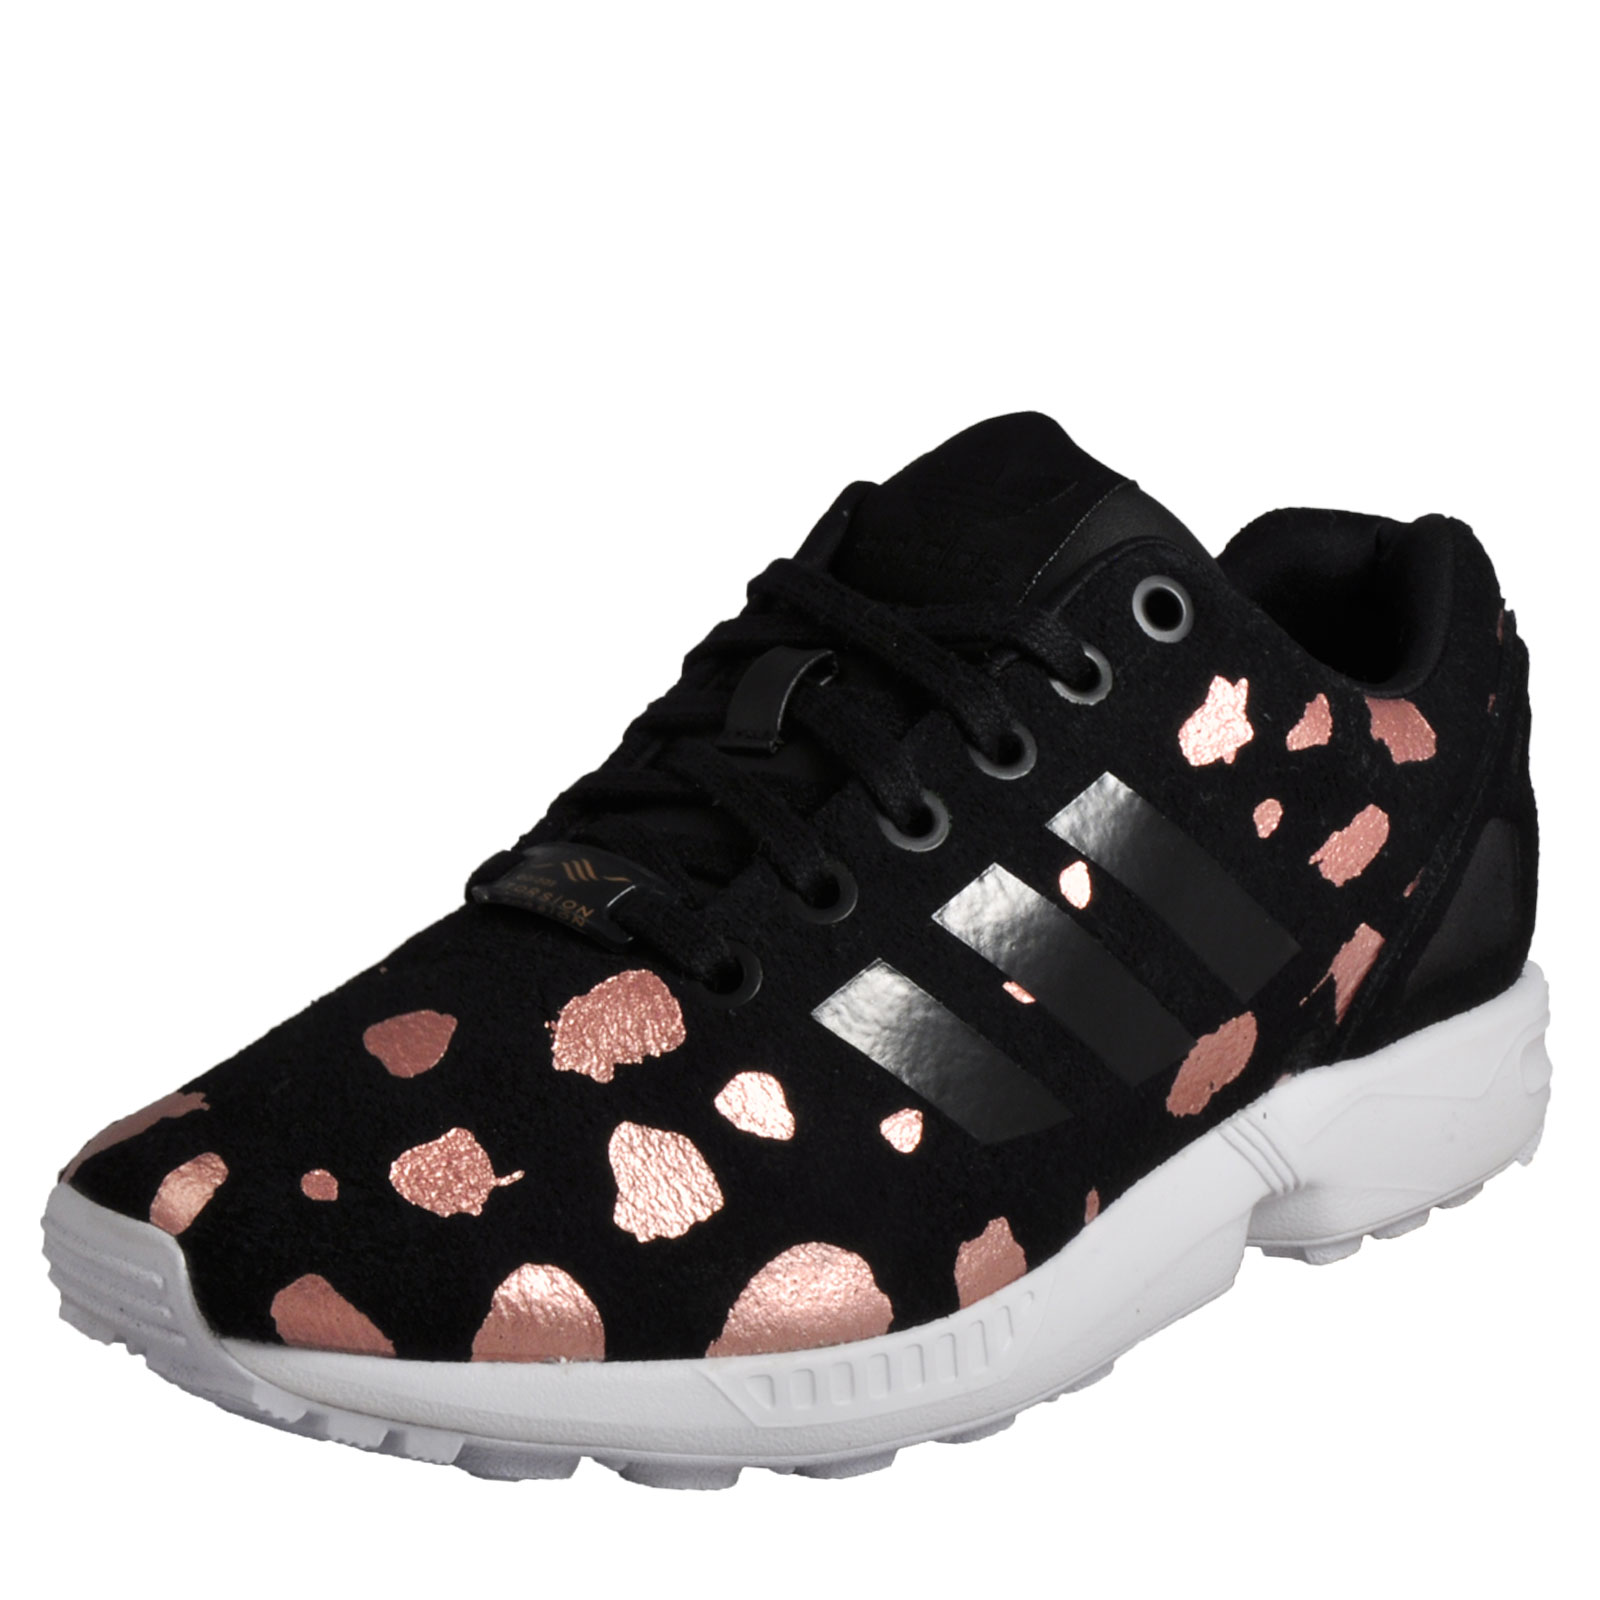 new style e0f46 e5a81 Adidas Originals ZX Flux Women s Classic Casual Retro Gym Trainers Black